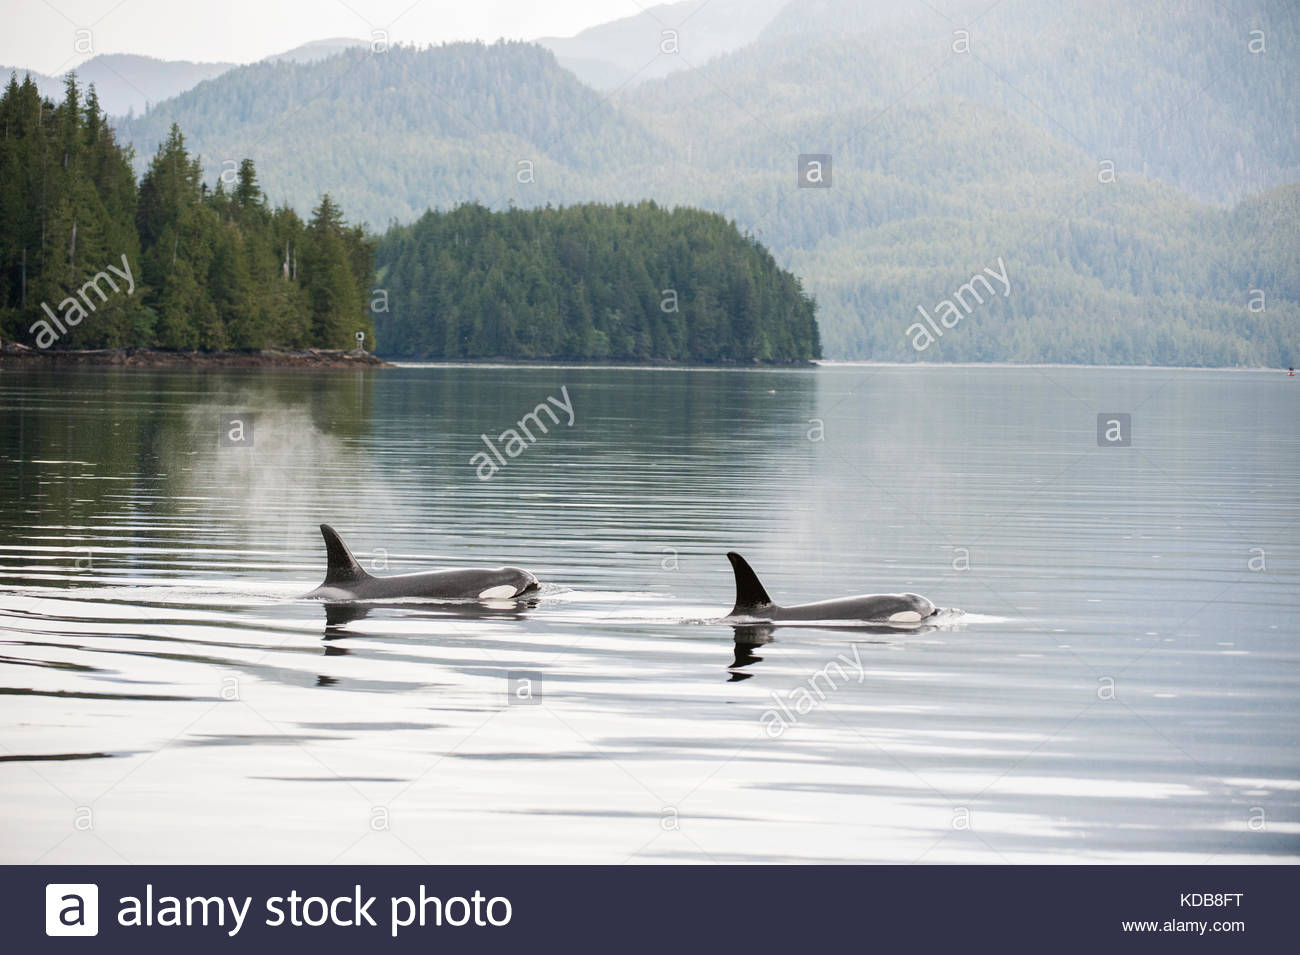 Two killer whales, Orcinus orca, transiting the Inside Passage of the central coast. - Stock Image